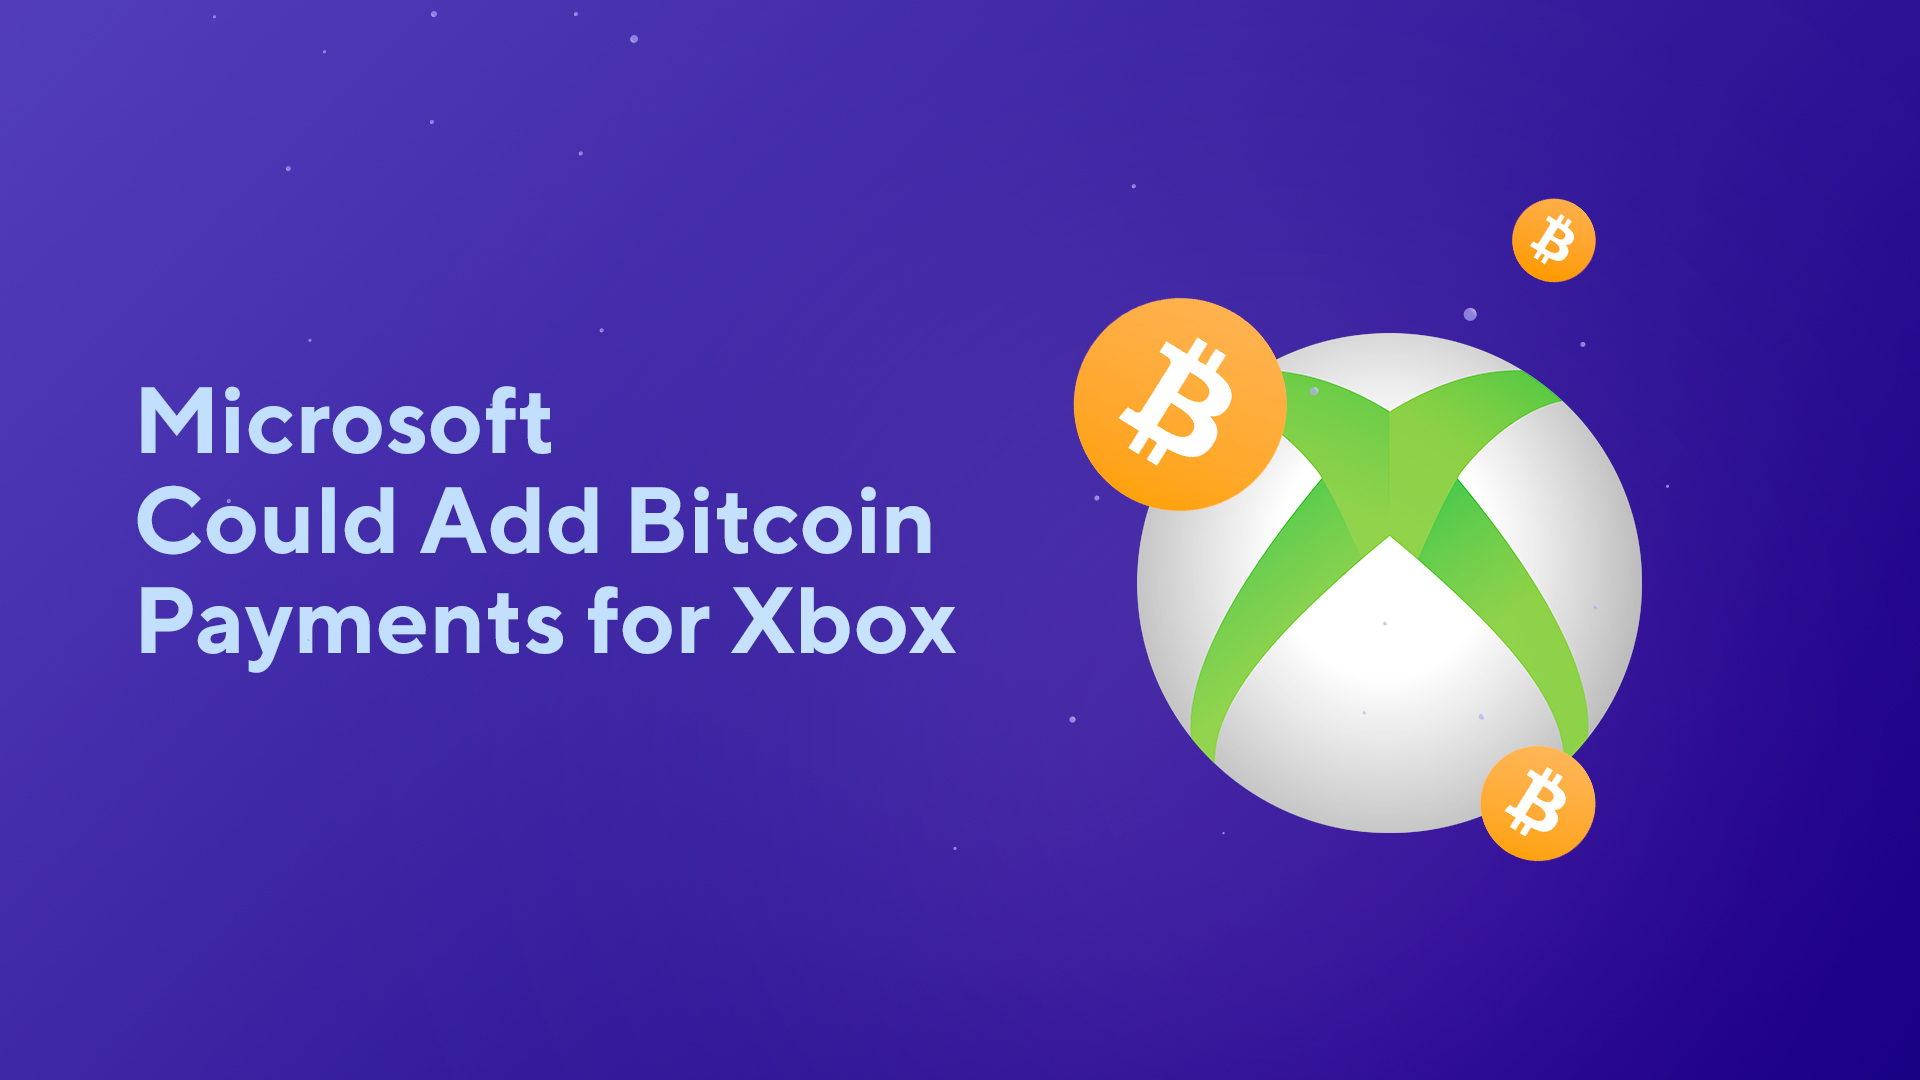 Microsoft Could Add Bitcoin Payments for Xbox